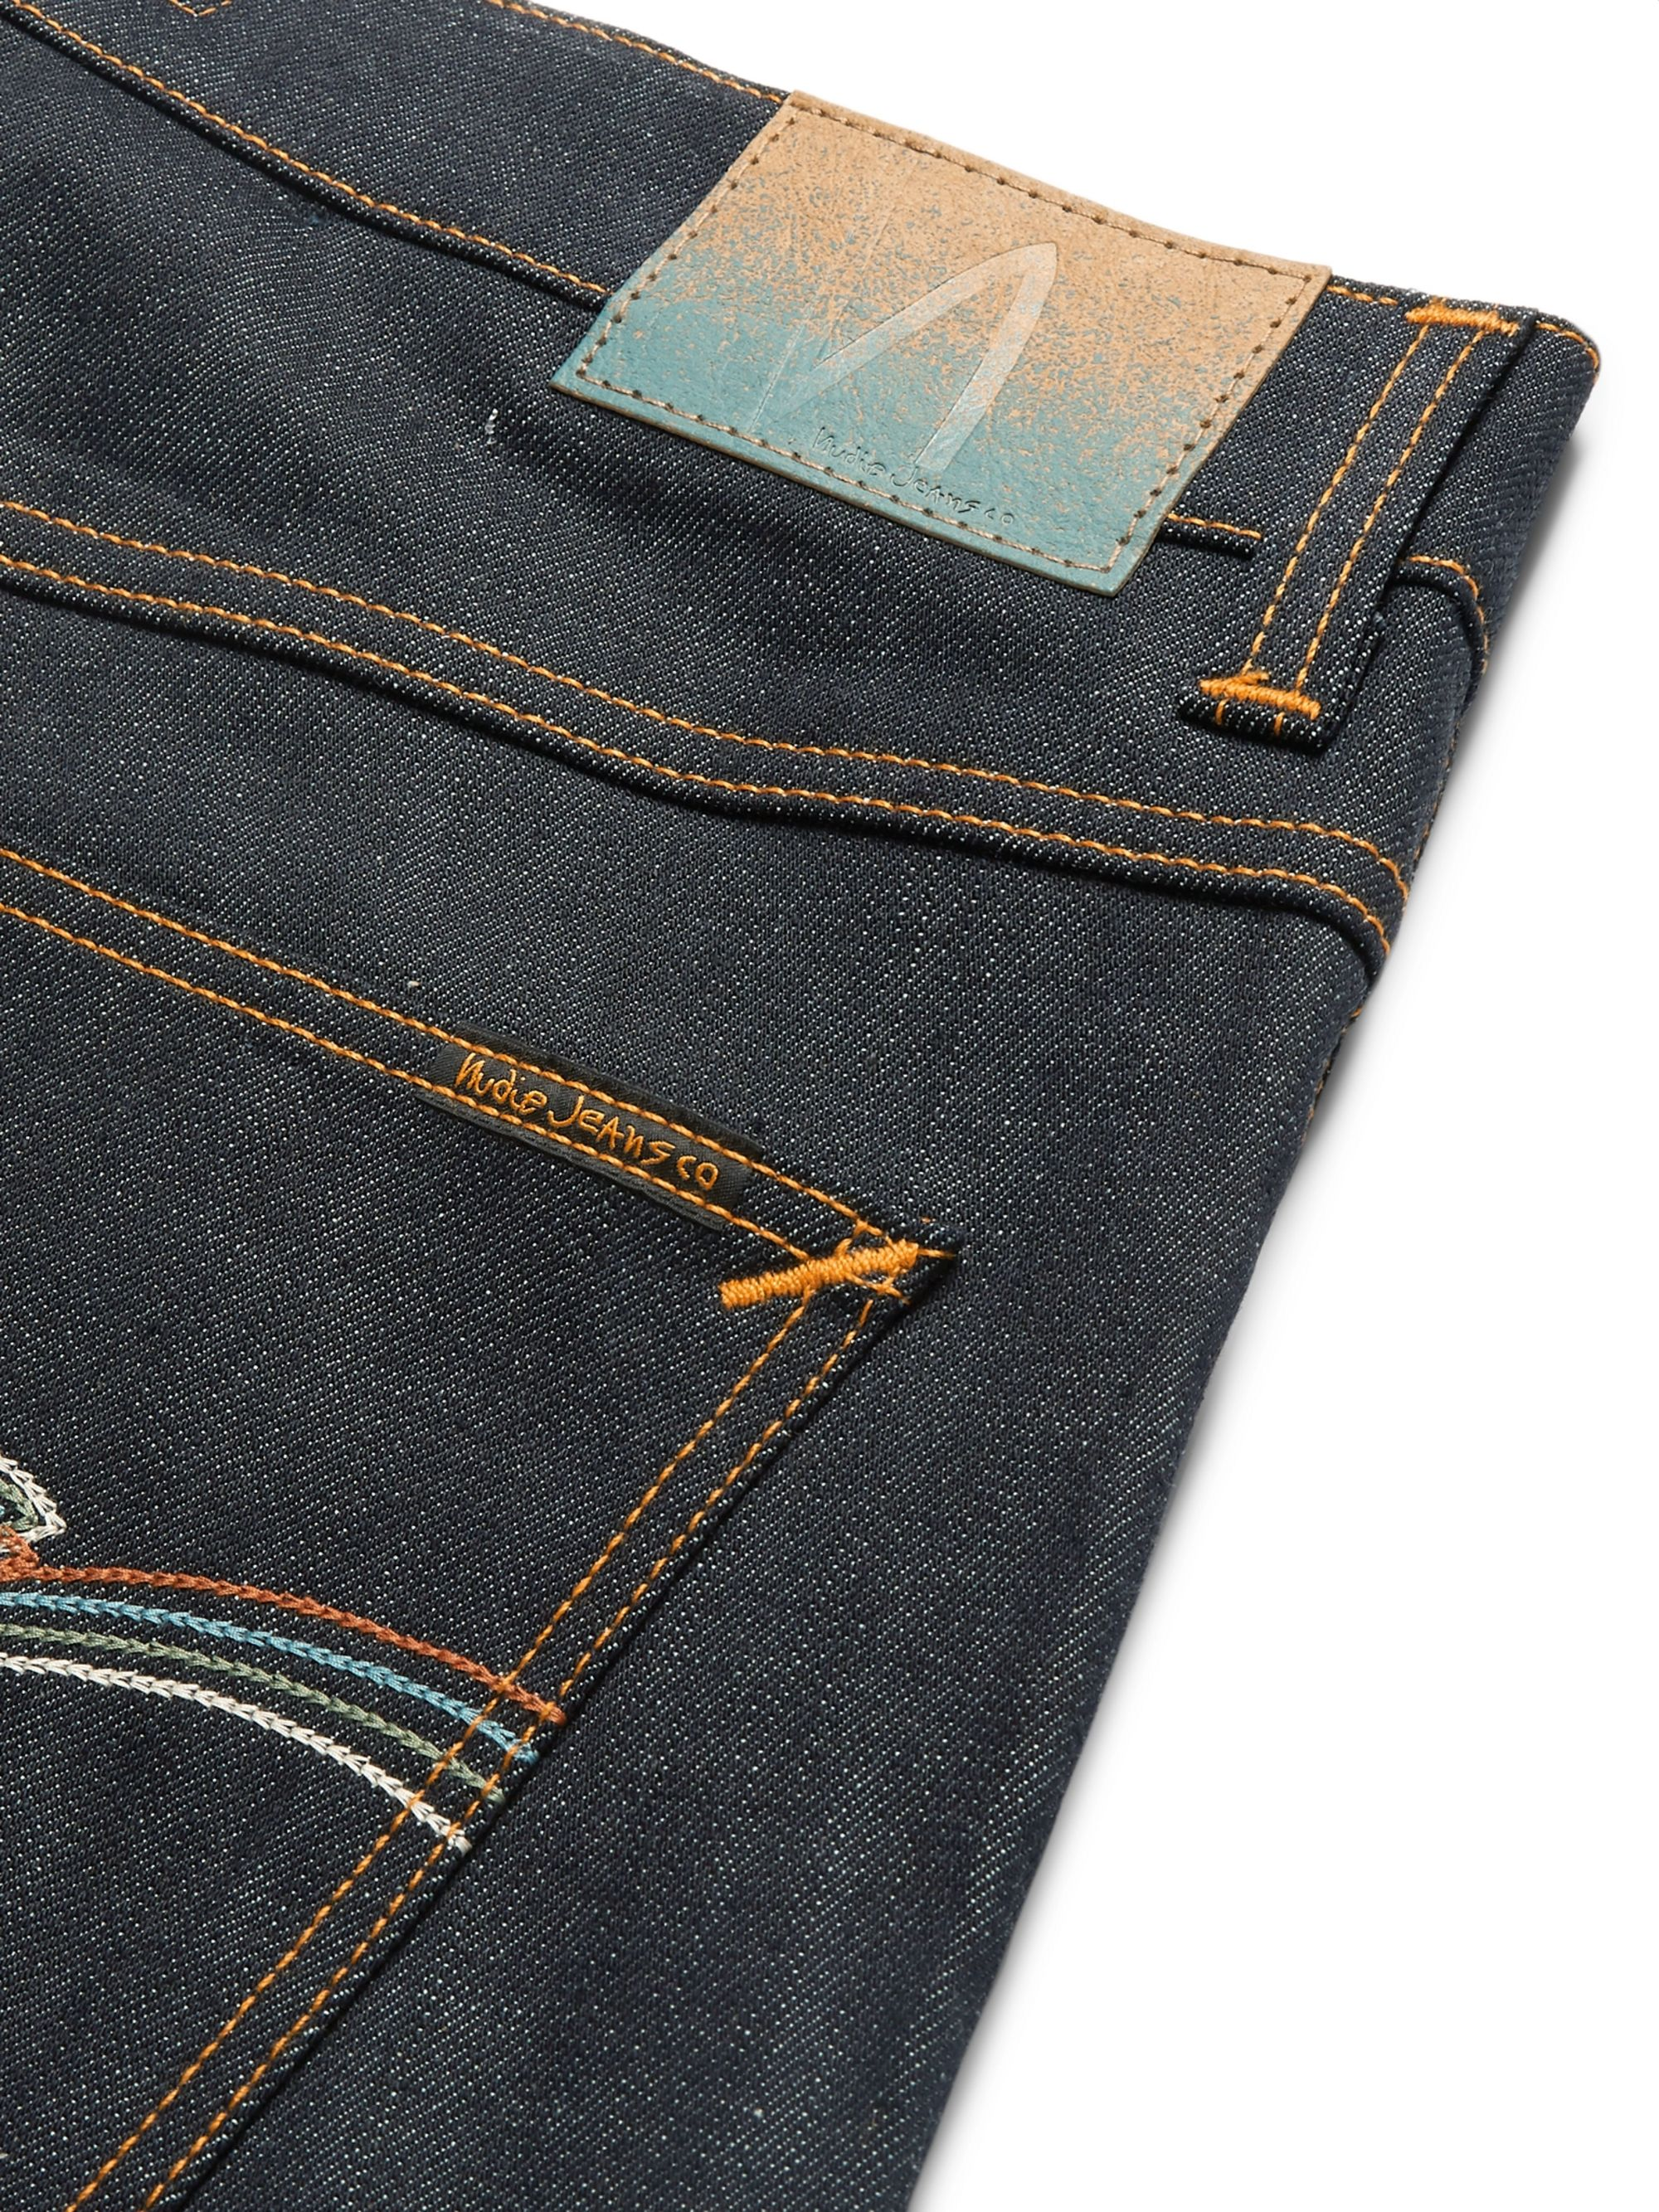 Nudie Jeans Lean Dean Slim-Fit Organic Denim Jeans